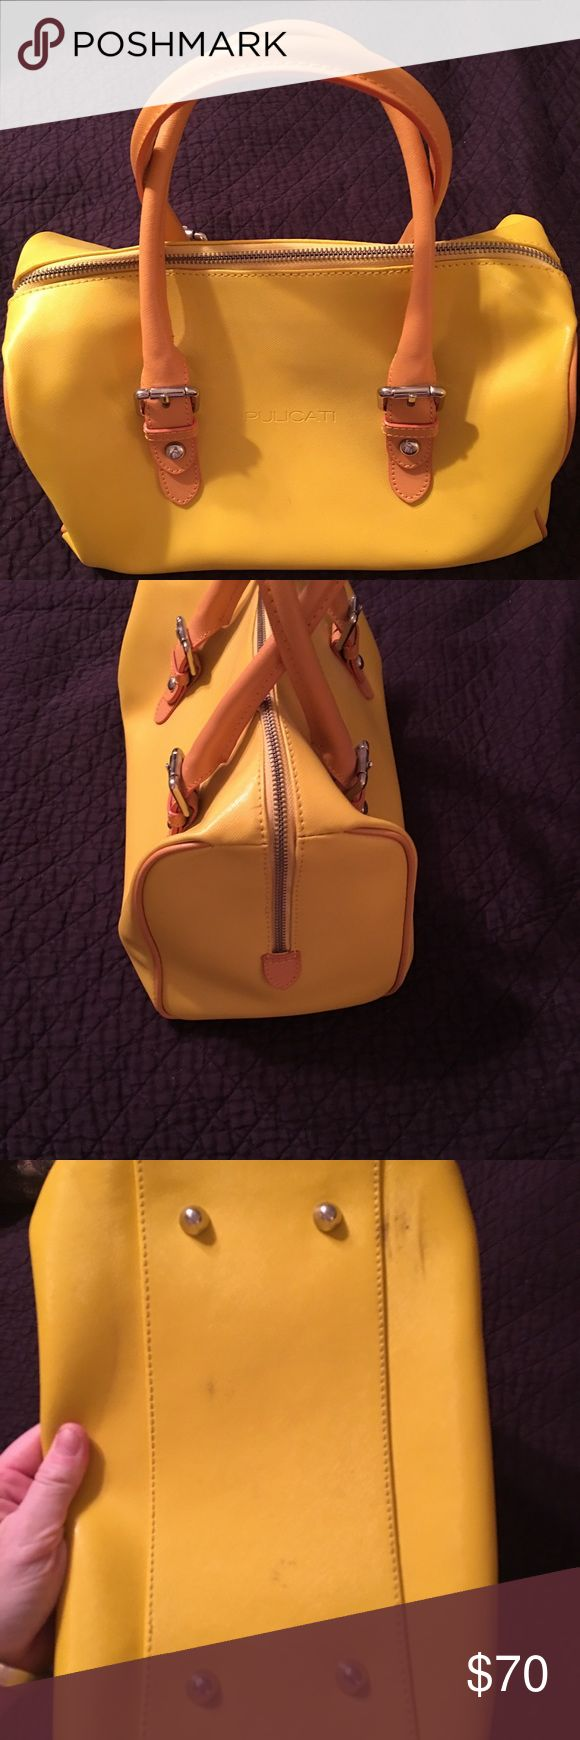 Pulicati Bowler Bag Guanine Leather Made in Italy Pulicati Bowler Bag Guanine Leather Made in Italy Beautiful Yellow for Spring—Has a few scuffs on the bottom and one by the zipper (shown in pics) Pulicati Bags Totes